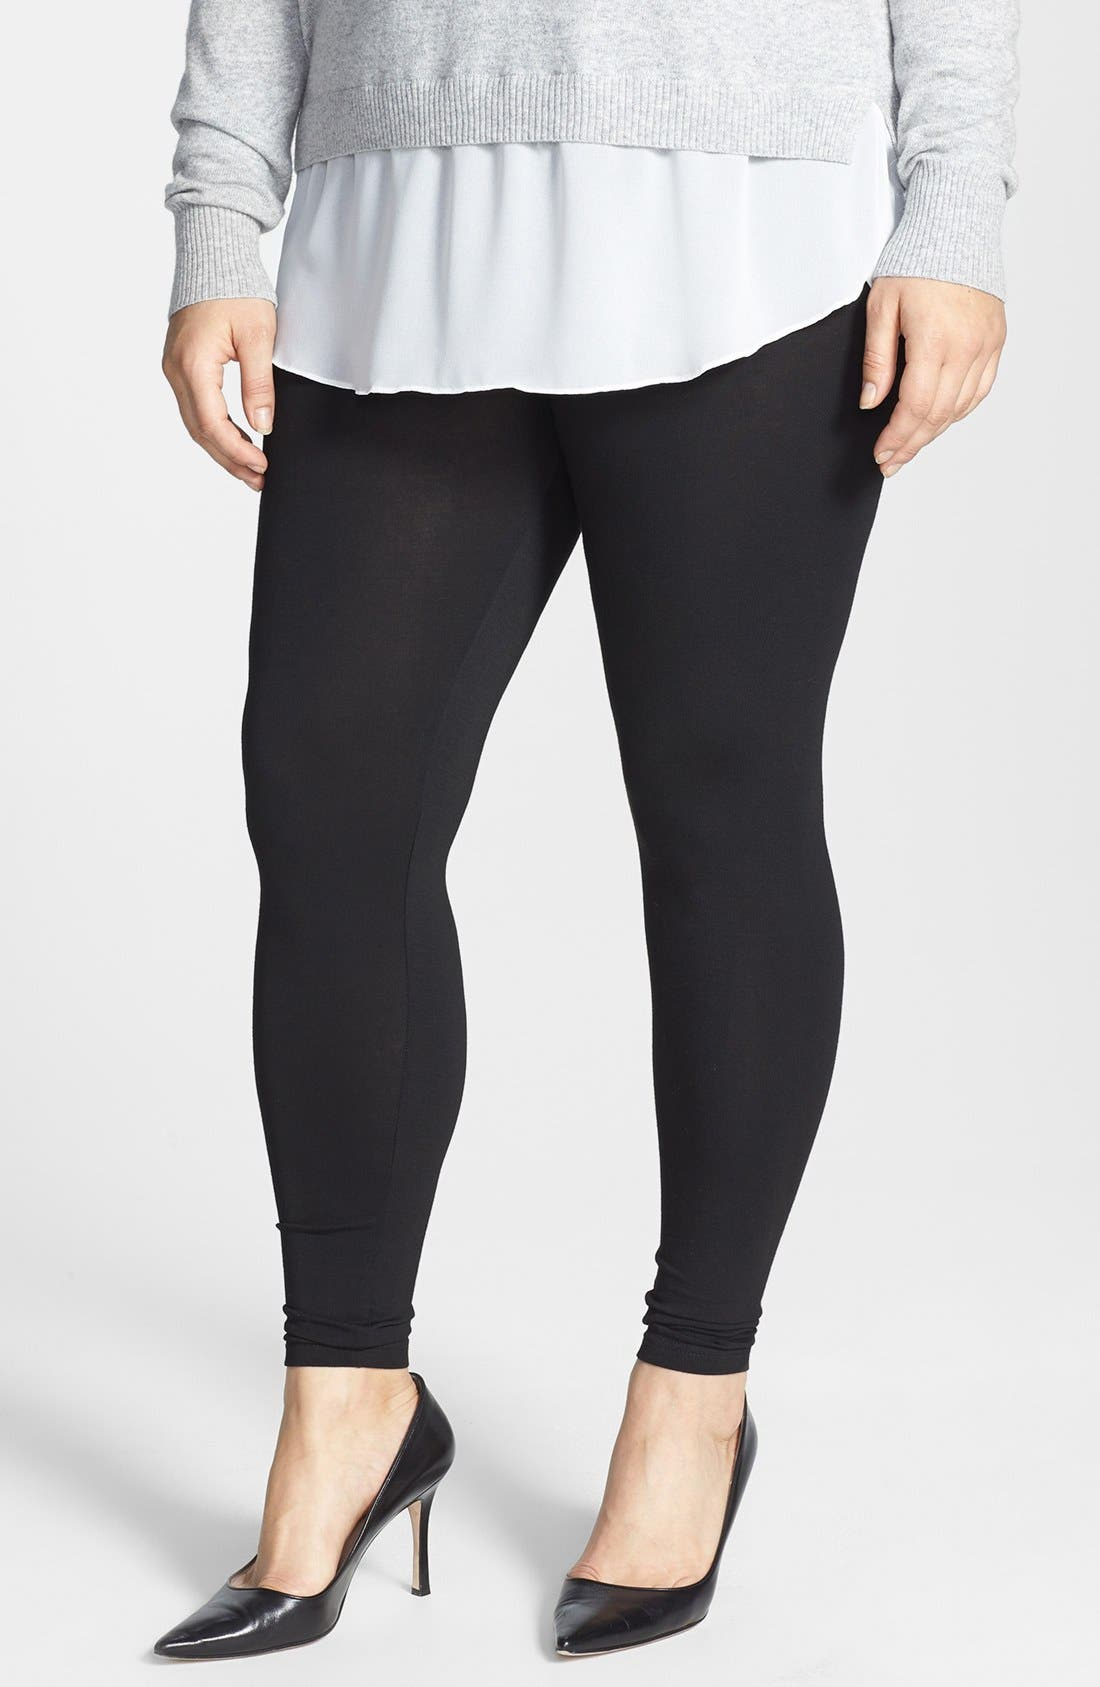 Alternate Image 1 Selected - Evans Stretch Knit Leggings (Plus Size)